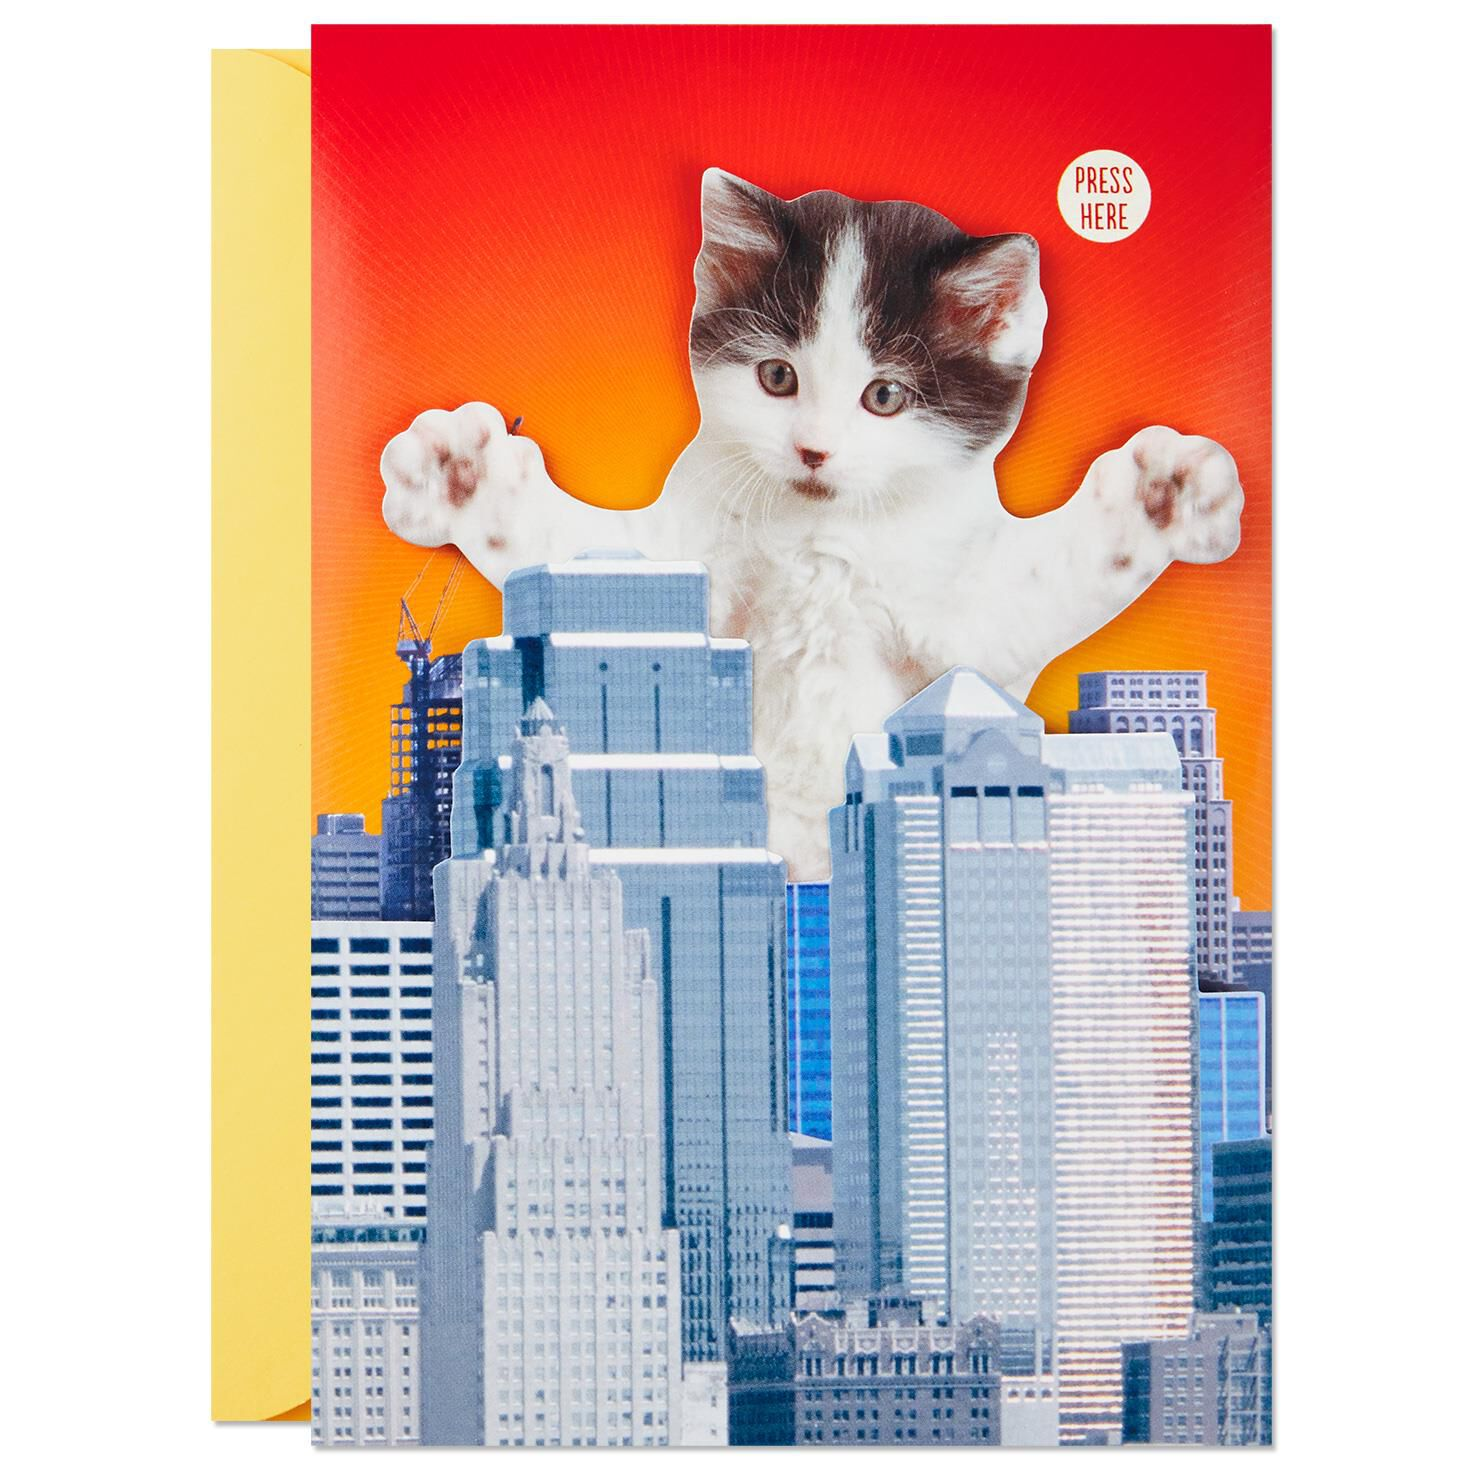 Epically Cute Kitten Birthday Card With Sound And Motion Greeting Cards Hallmark Kittens Meow Jpg 1470x1470